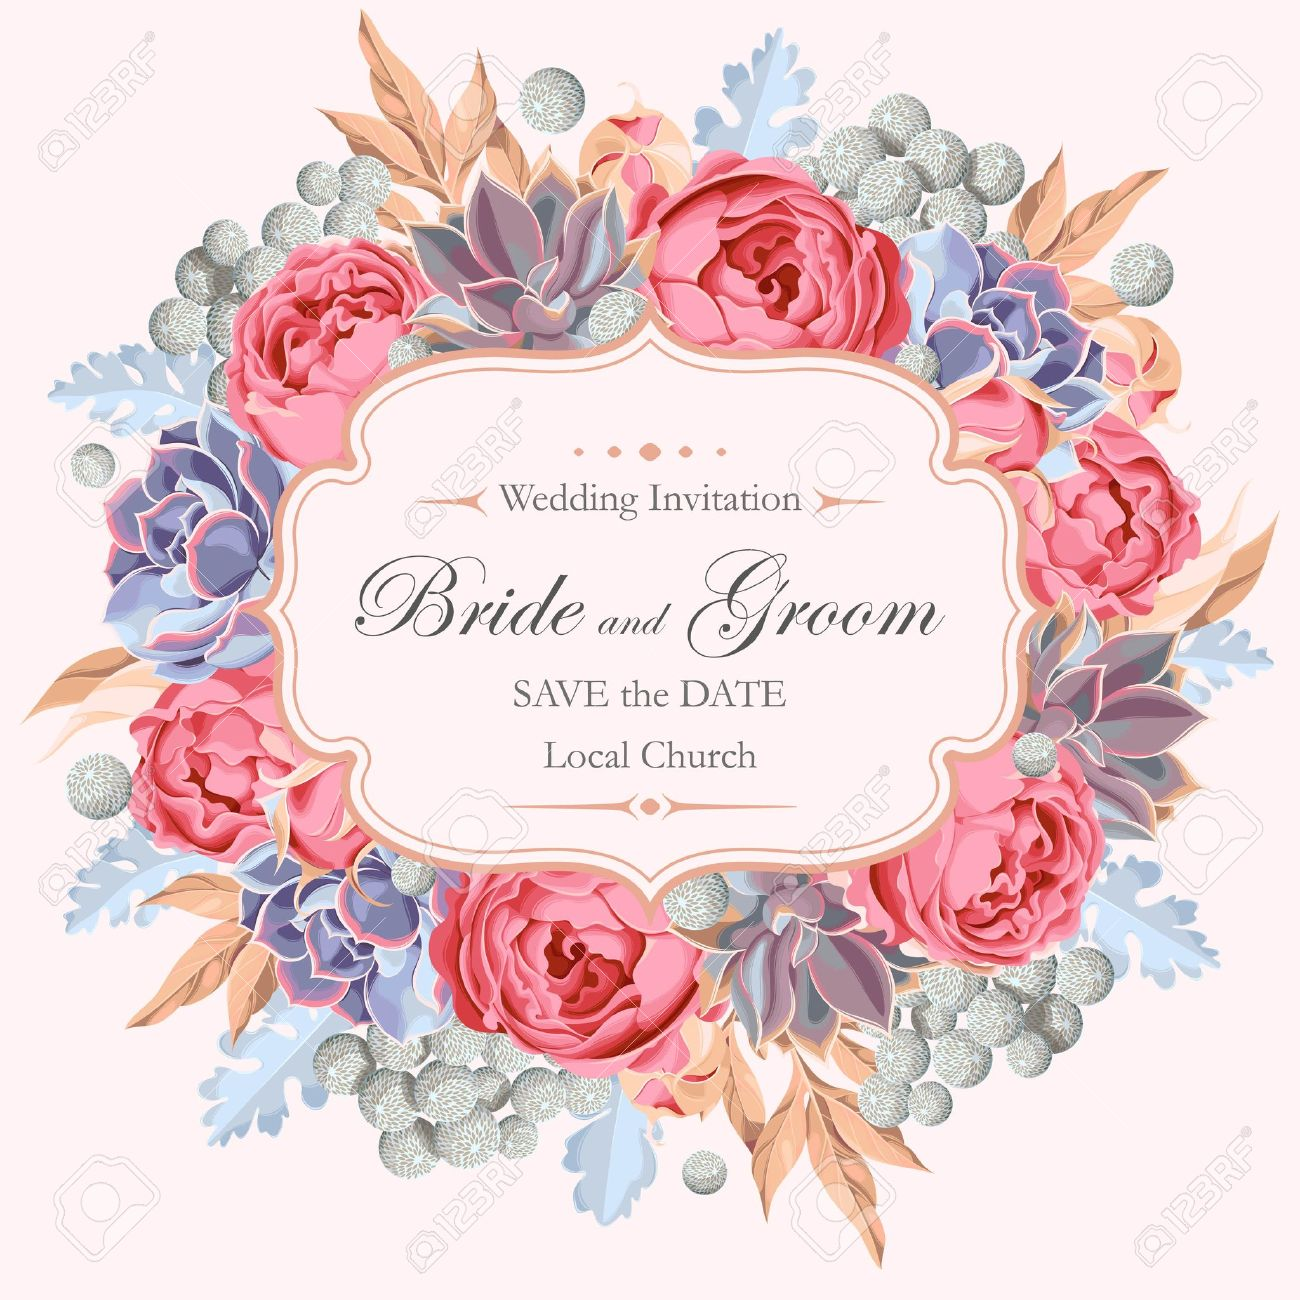 Vector vintage wedding invitation with peony roses and varicolored succulents - 57640361